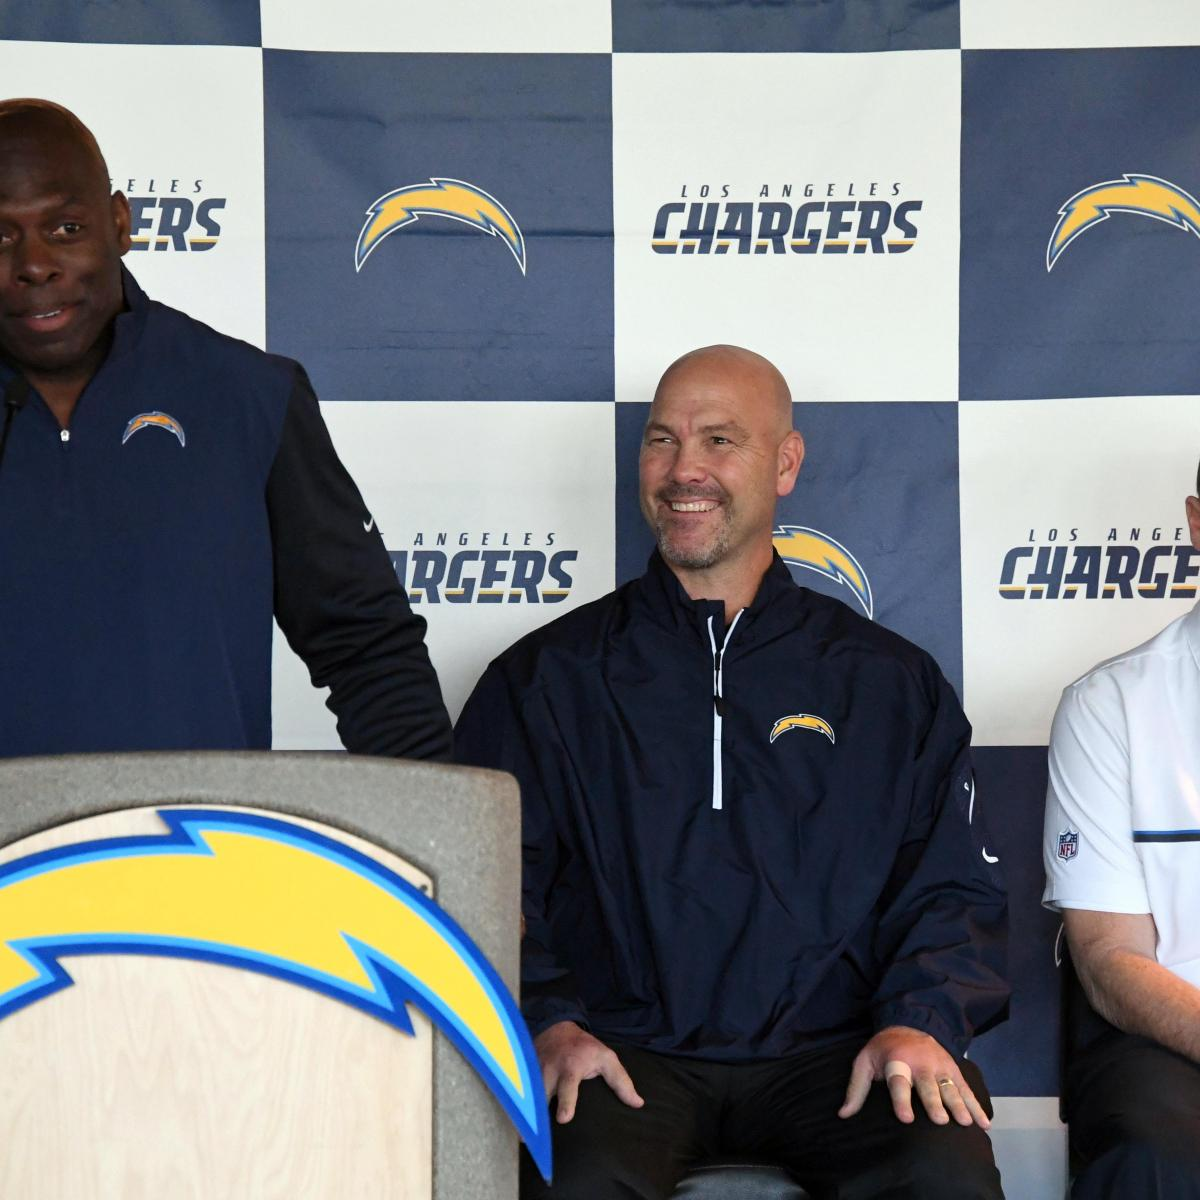 San Diego Chargers Draft Picks: Chargers Draft Picks 2017: Results, Grades And Analysis